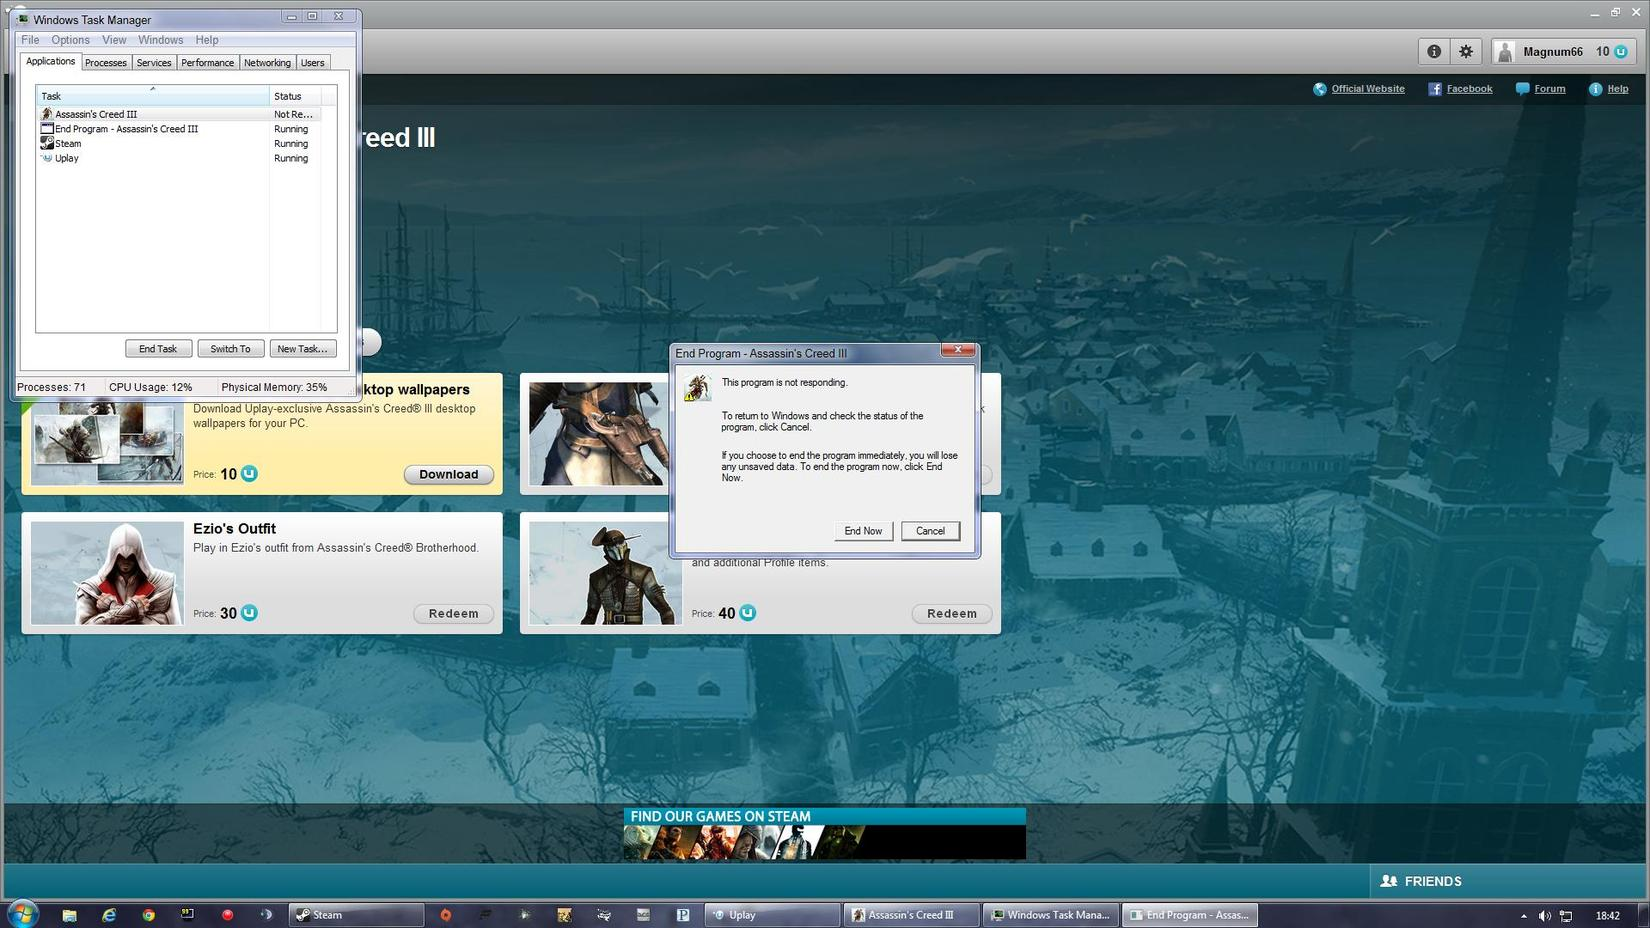 Assassin's Creed 3 (PC 1st mission SPOILER) - SimHQ Forums